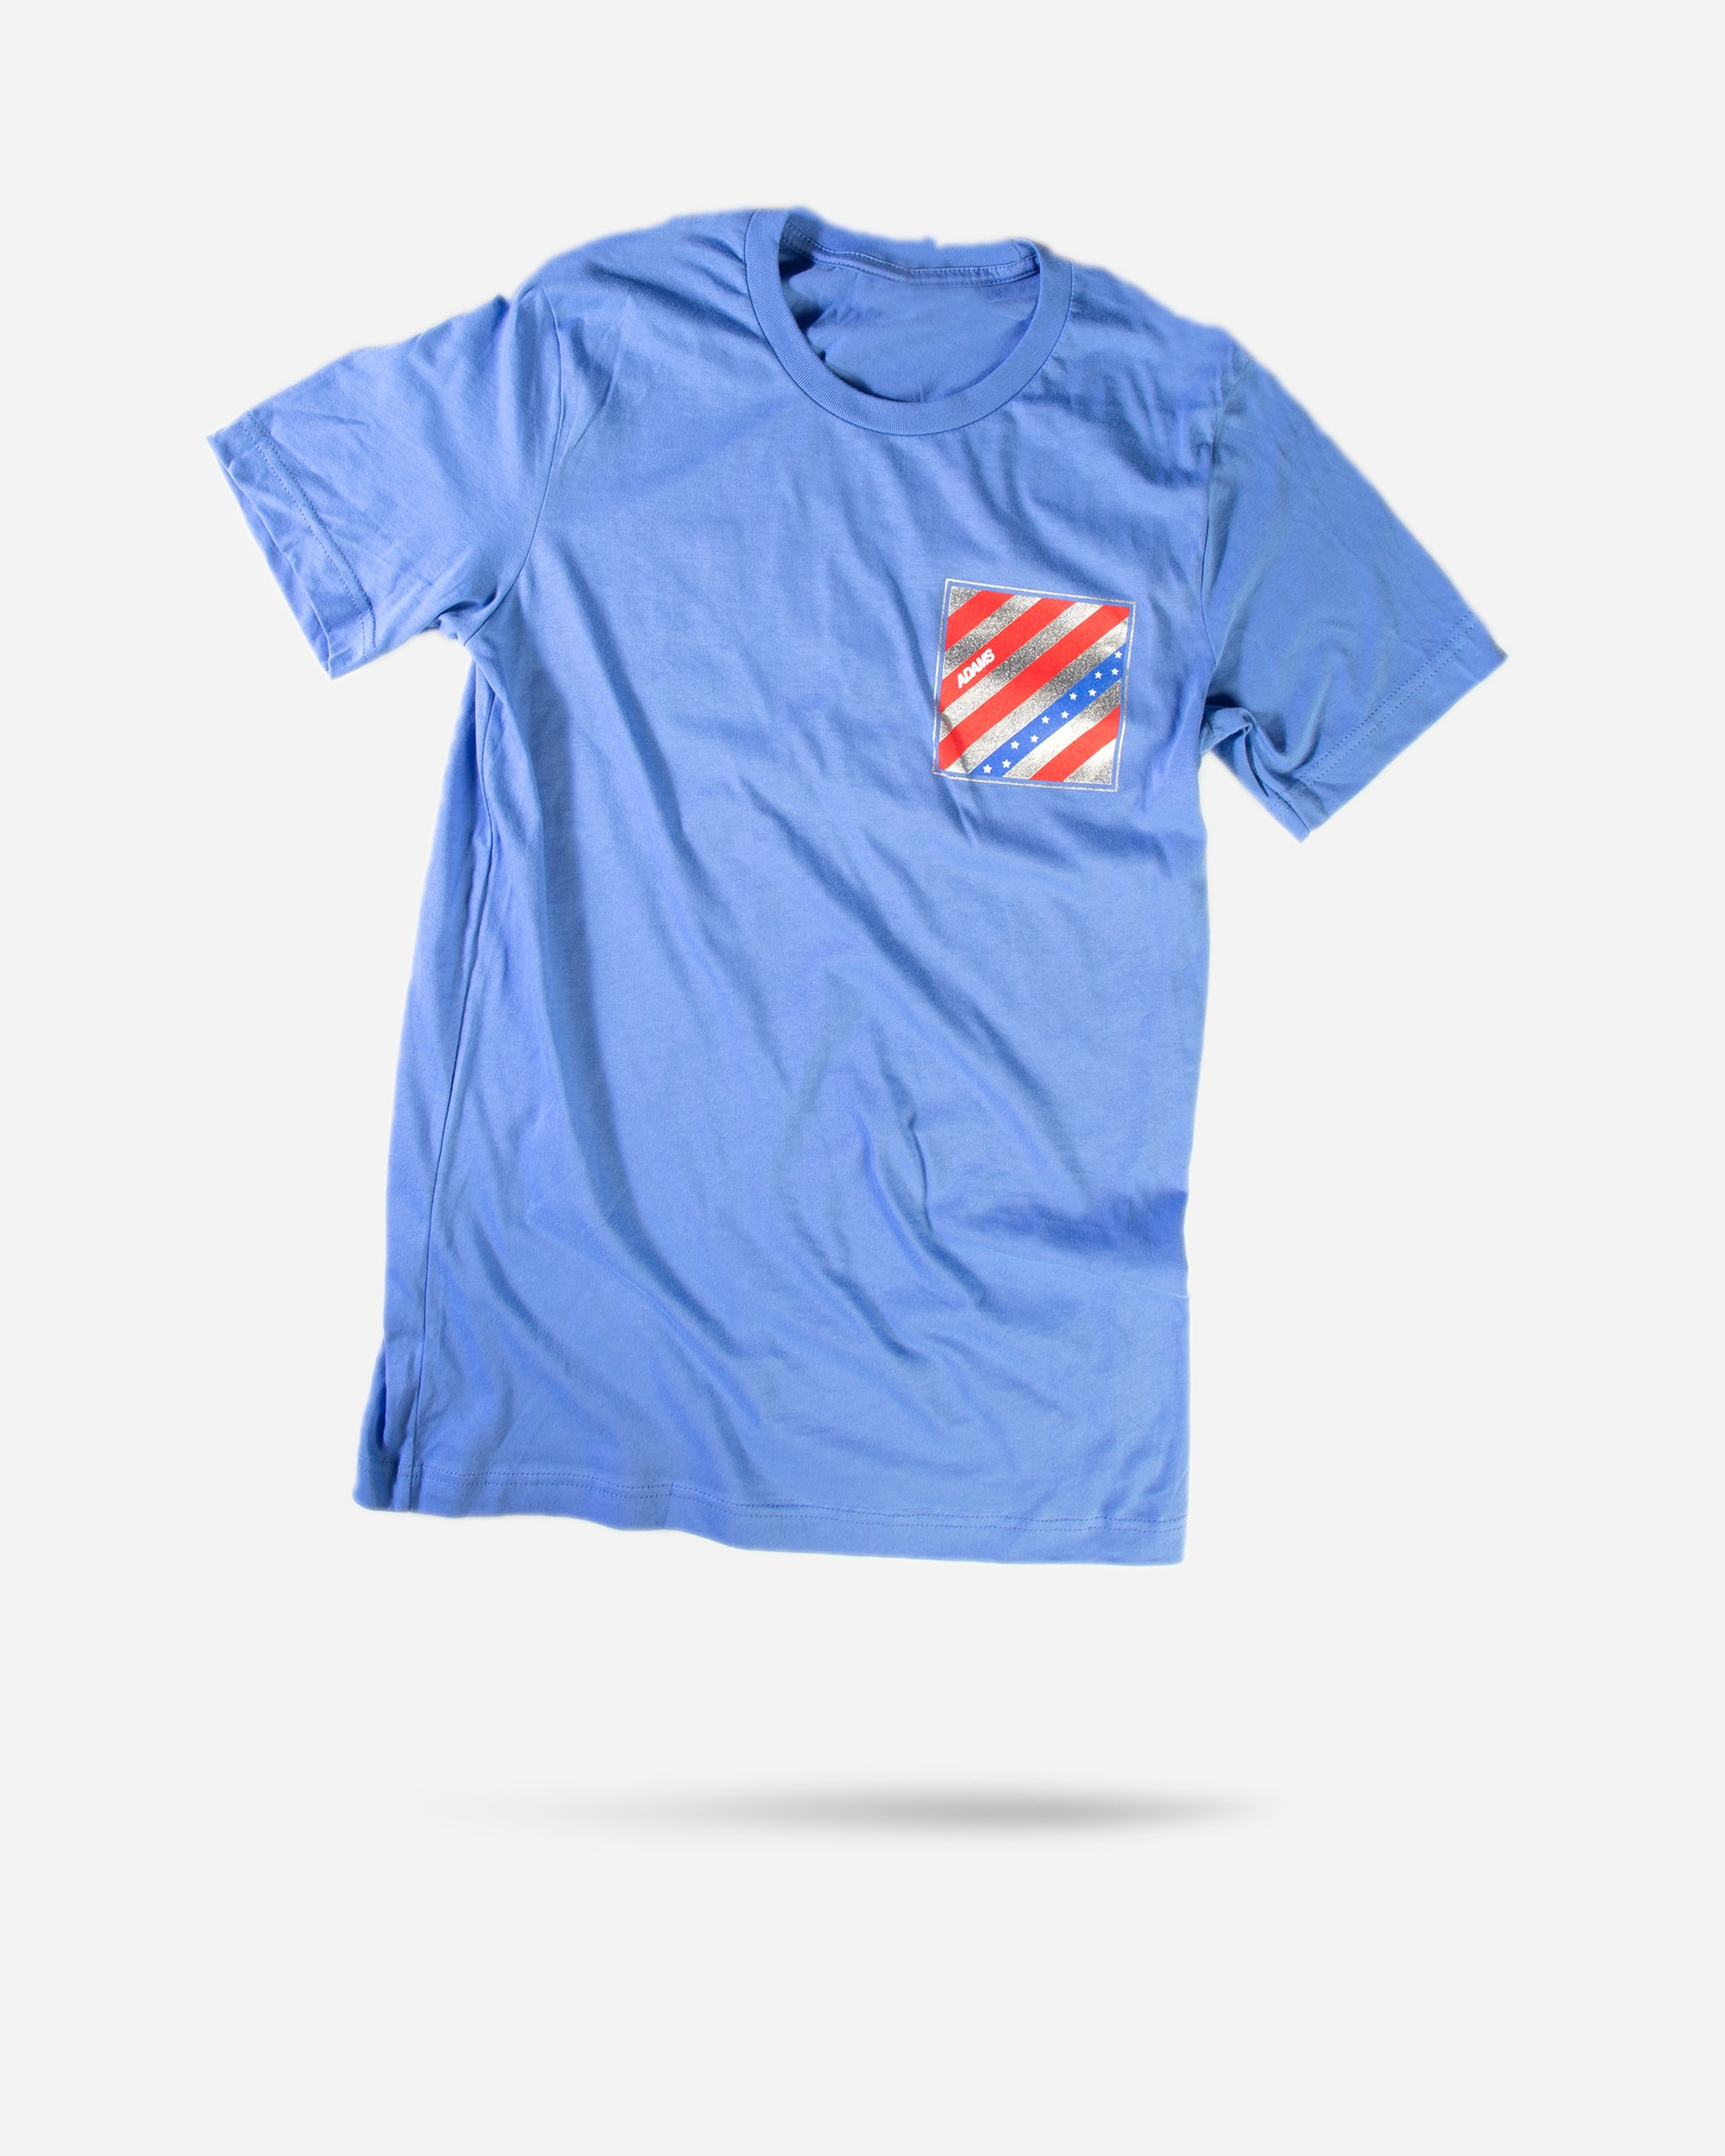 Adam's Blue USA Logo Shirt